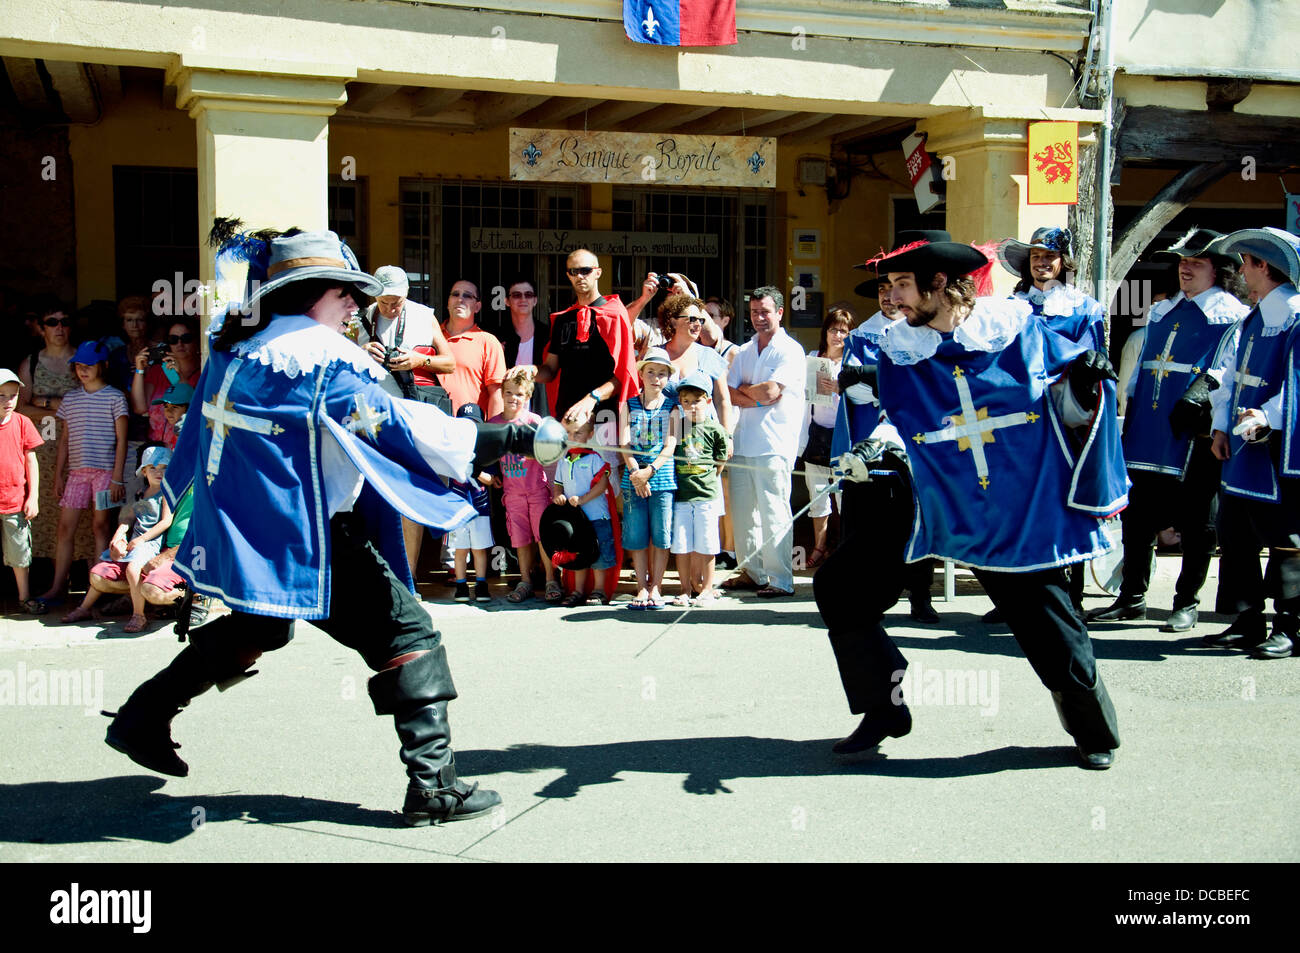 Dressed as Musketeers, young men mock duel in Lupiac, D'Artagnan's birthplace, during a fête honoring - Stock Image